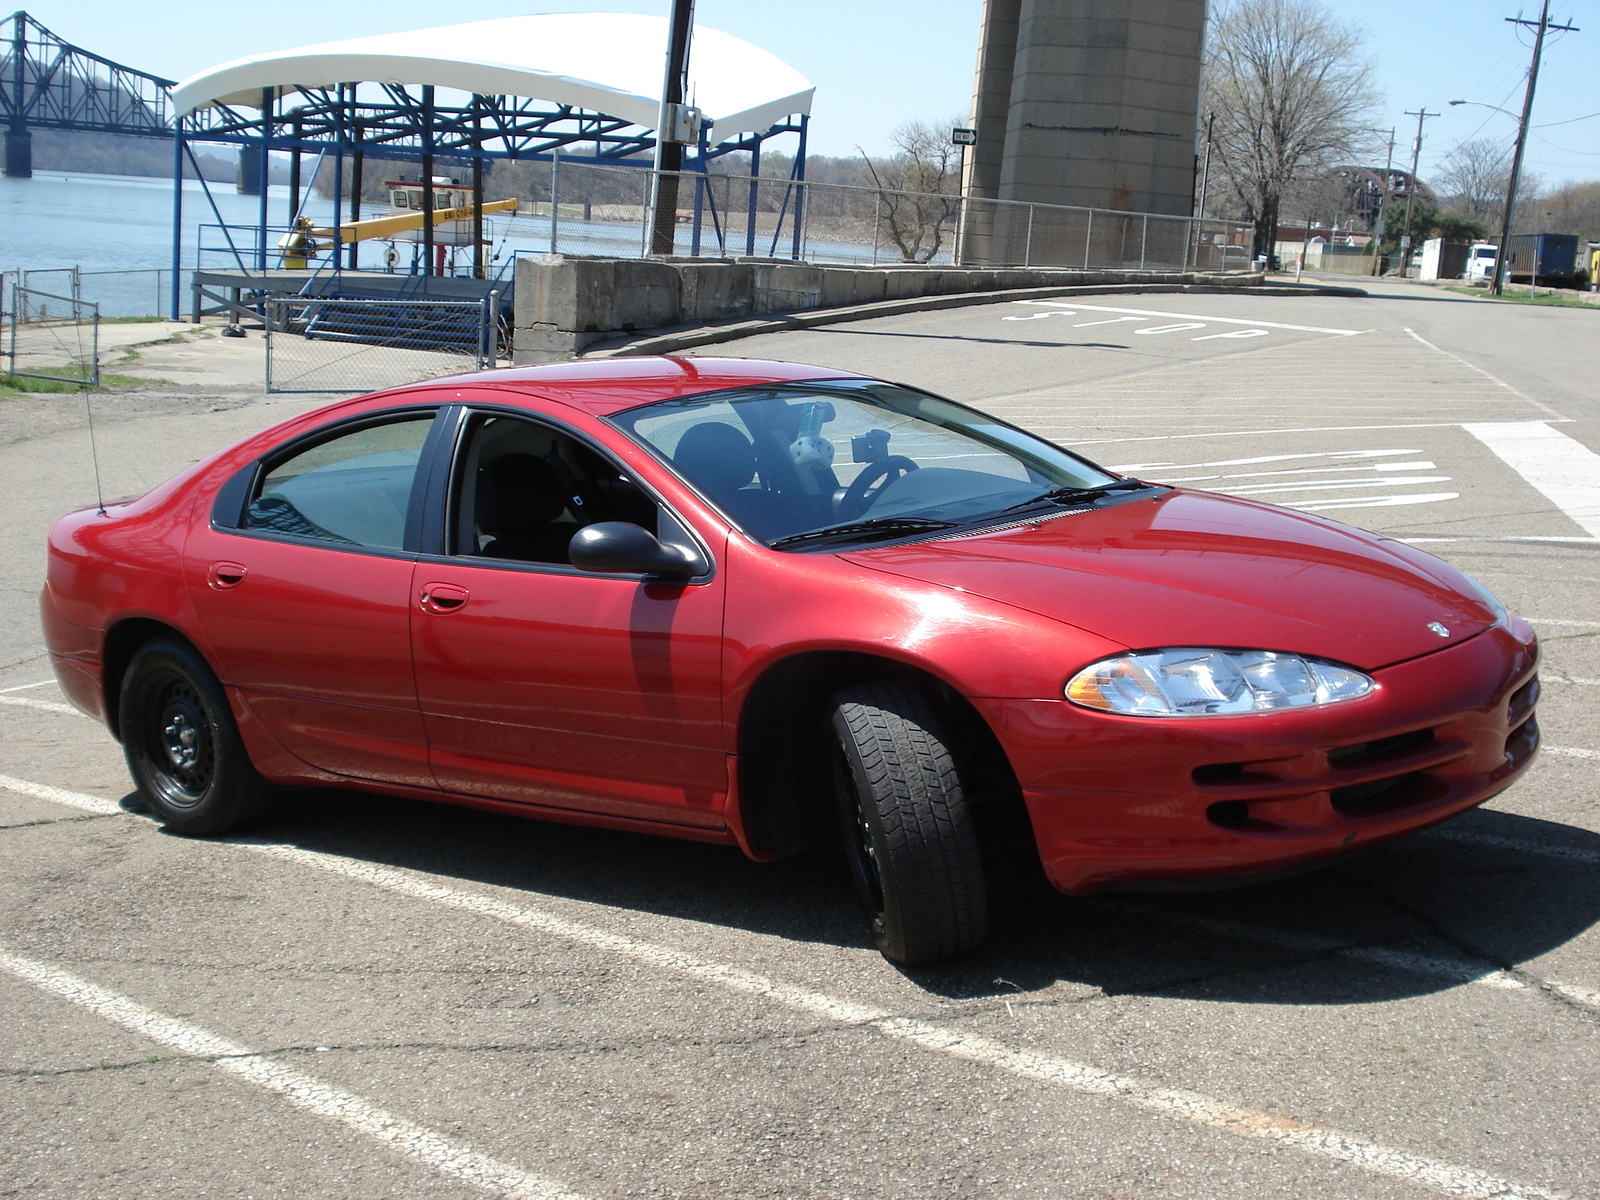 2002 Dodge Intrepid SE picture